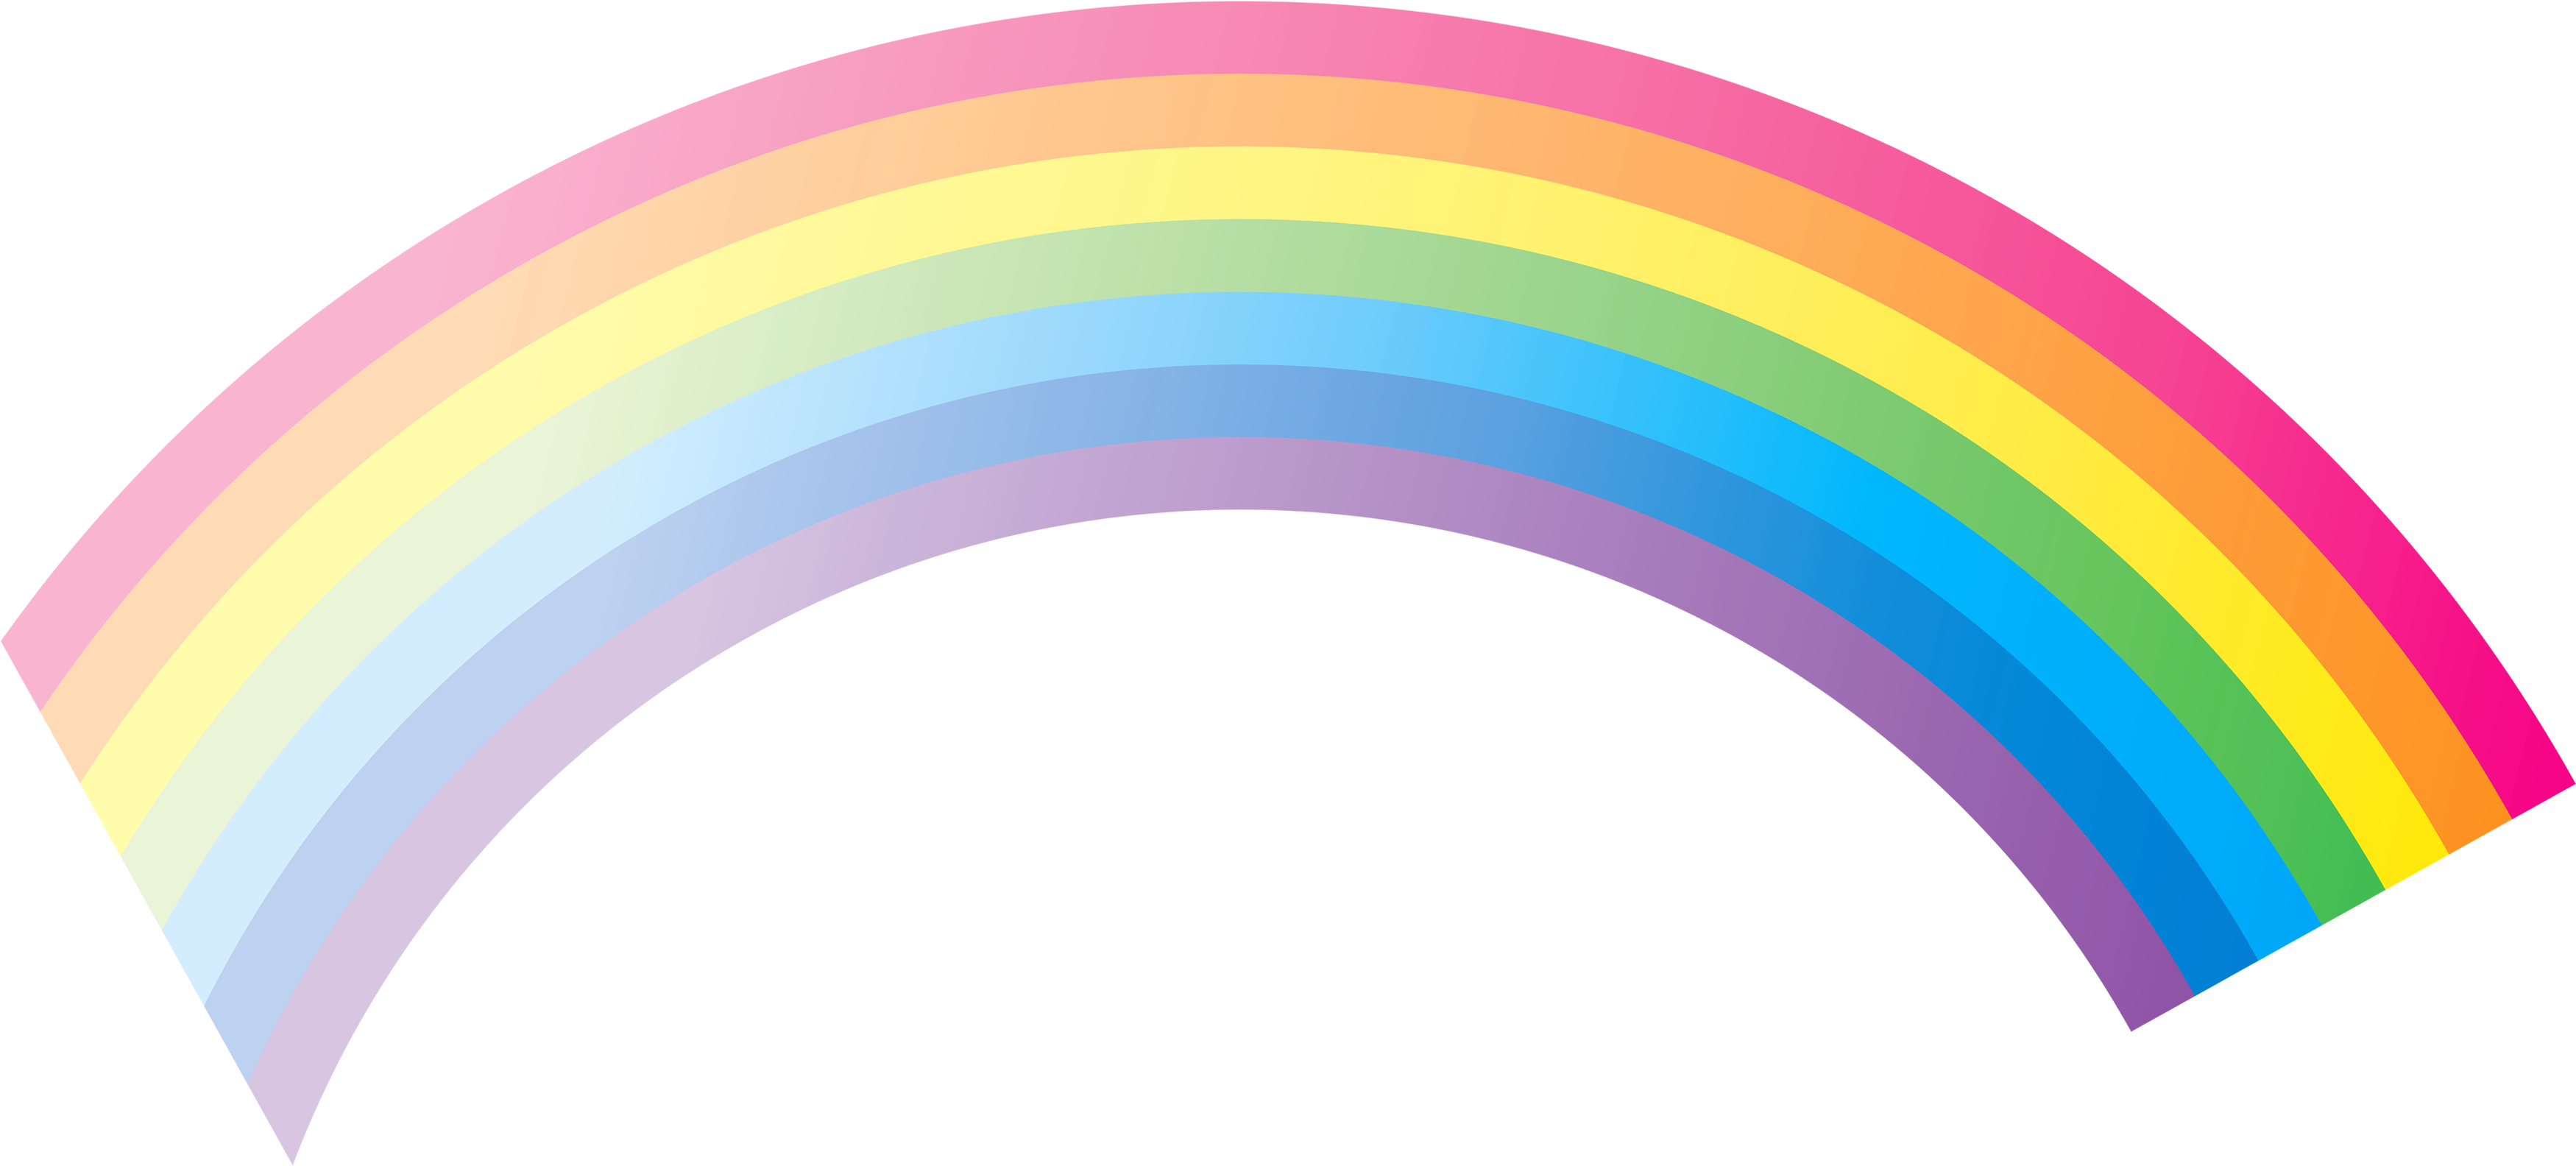 Donuts clipart clear background. Rainbow seven isolated stock